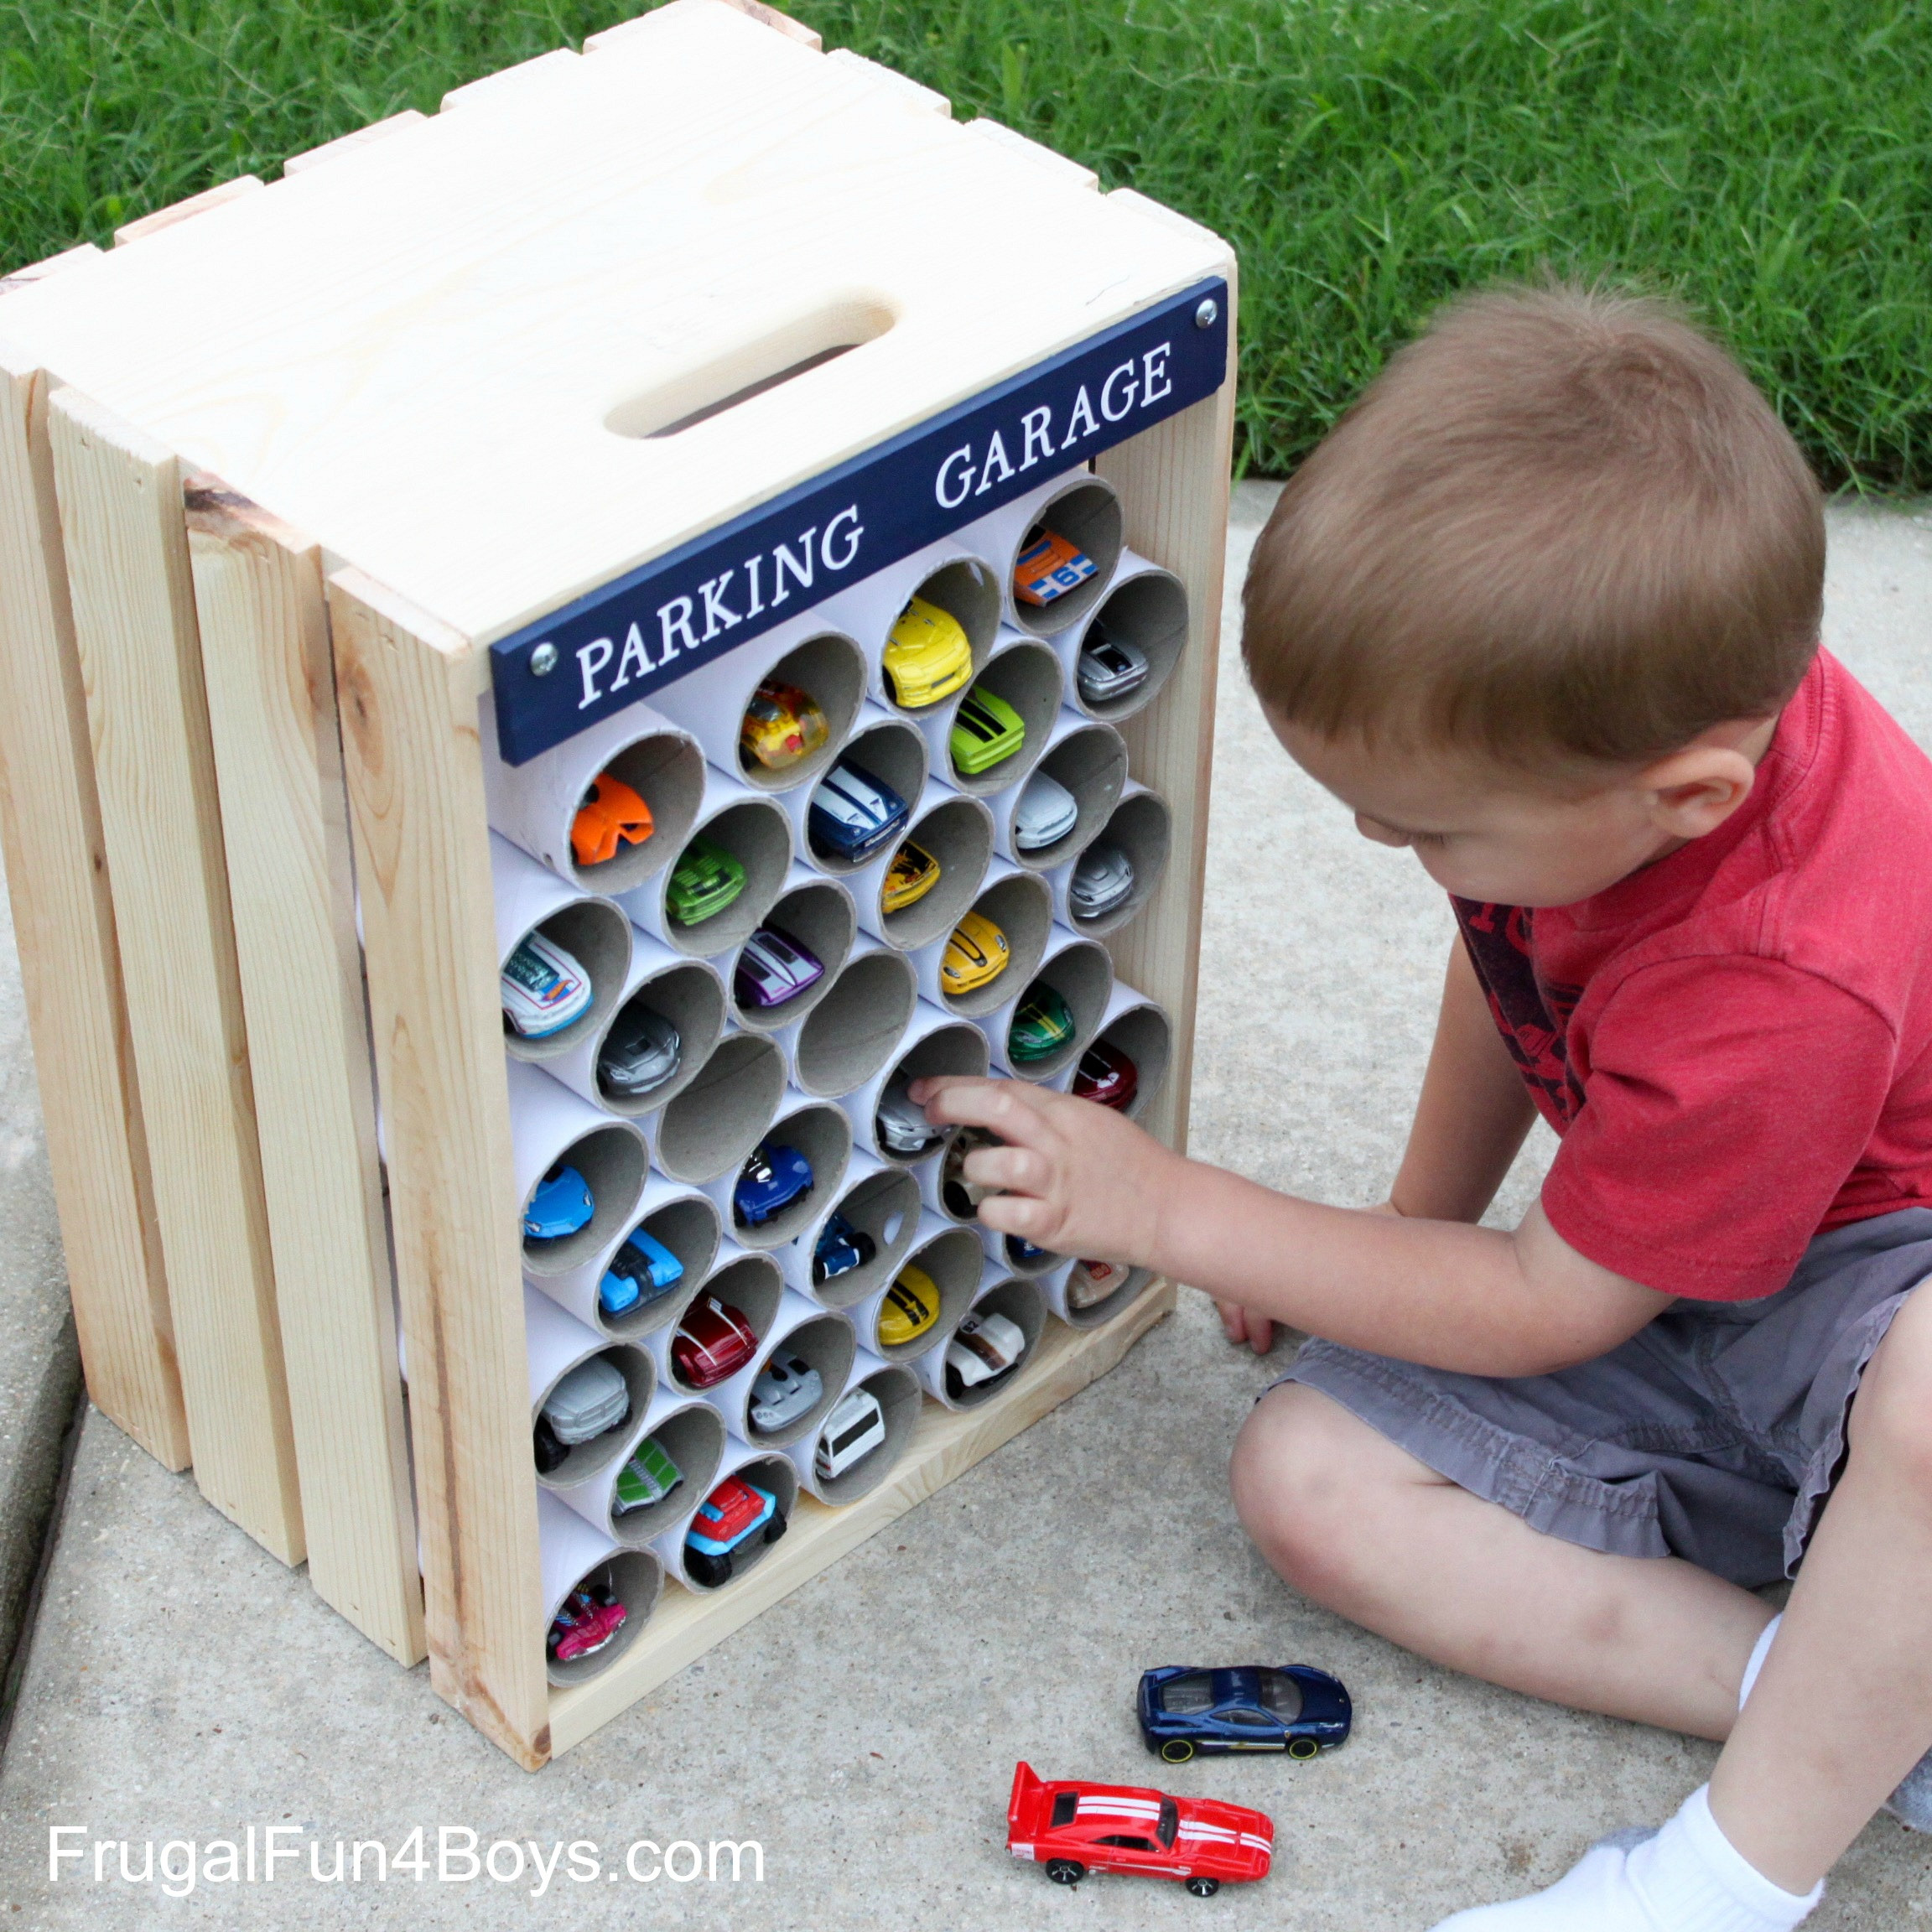 Best ideas about Hot Wheels Storage Ideas . Save or Pin DIY Wooden Crate Storage and Display for Hot Wheels Cars Now.